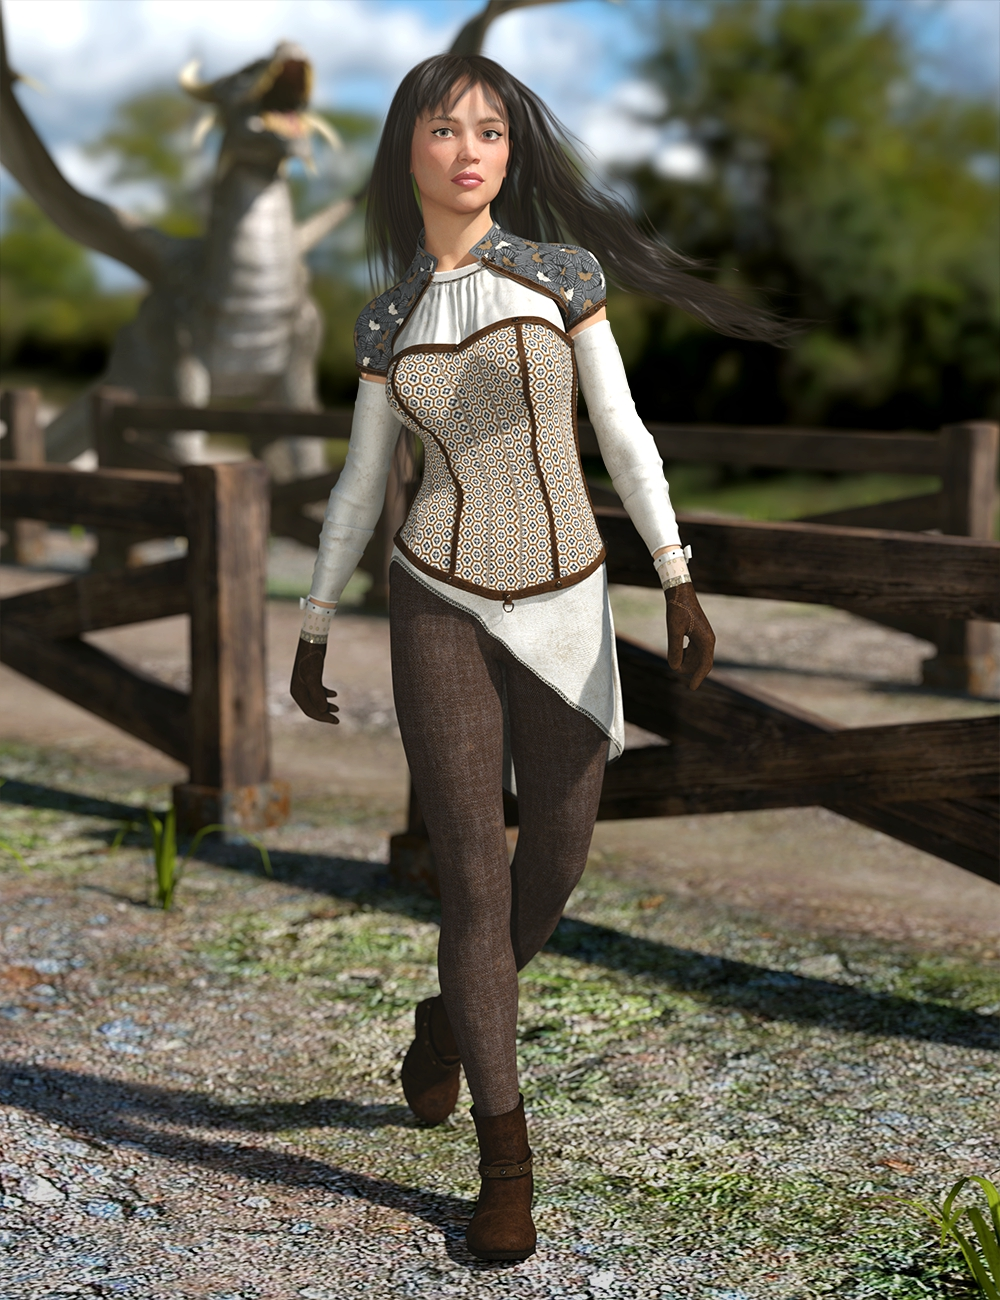 Blackwood Outfit for Genesis 8 Female by: Lyoness, 3D Models by Daz 3D